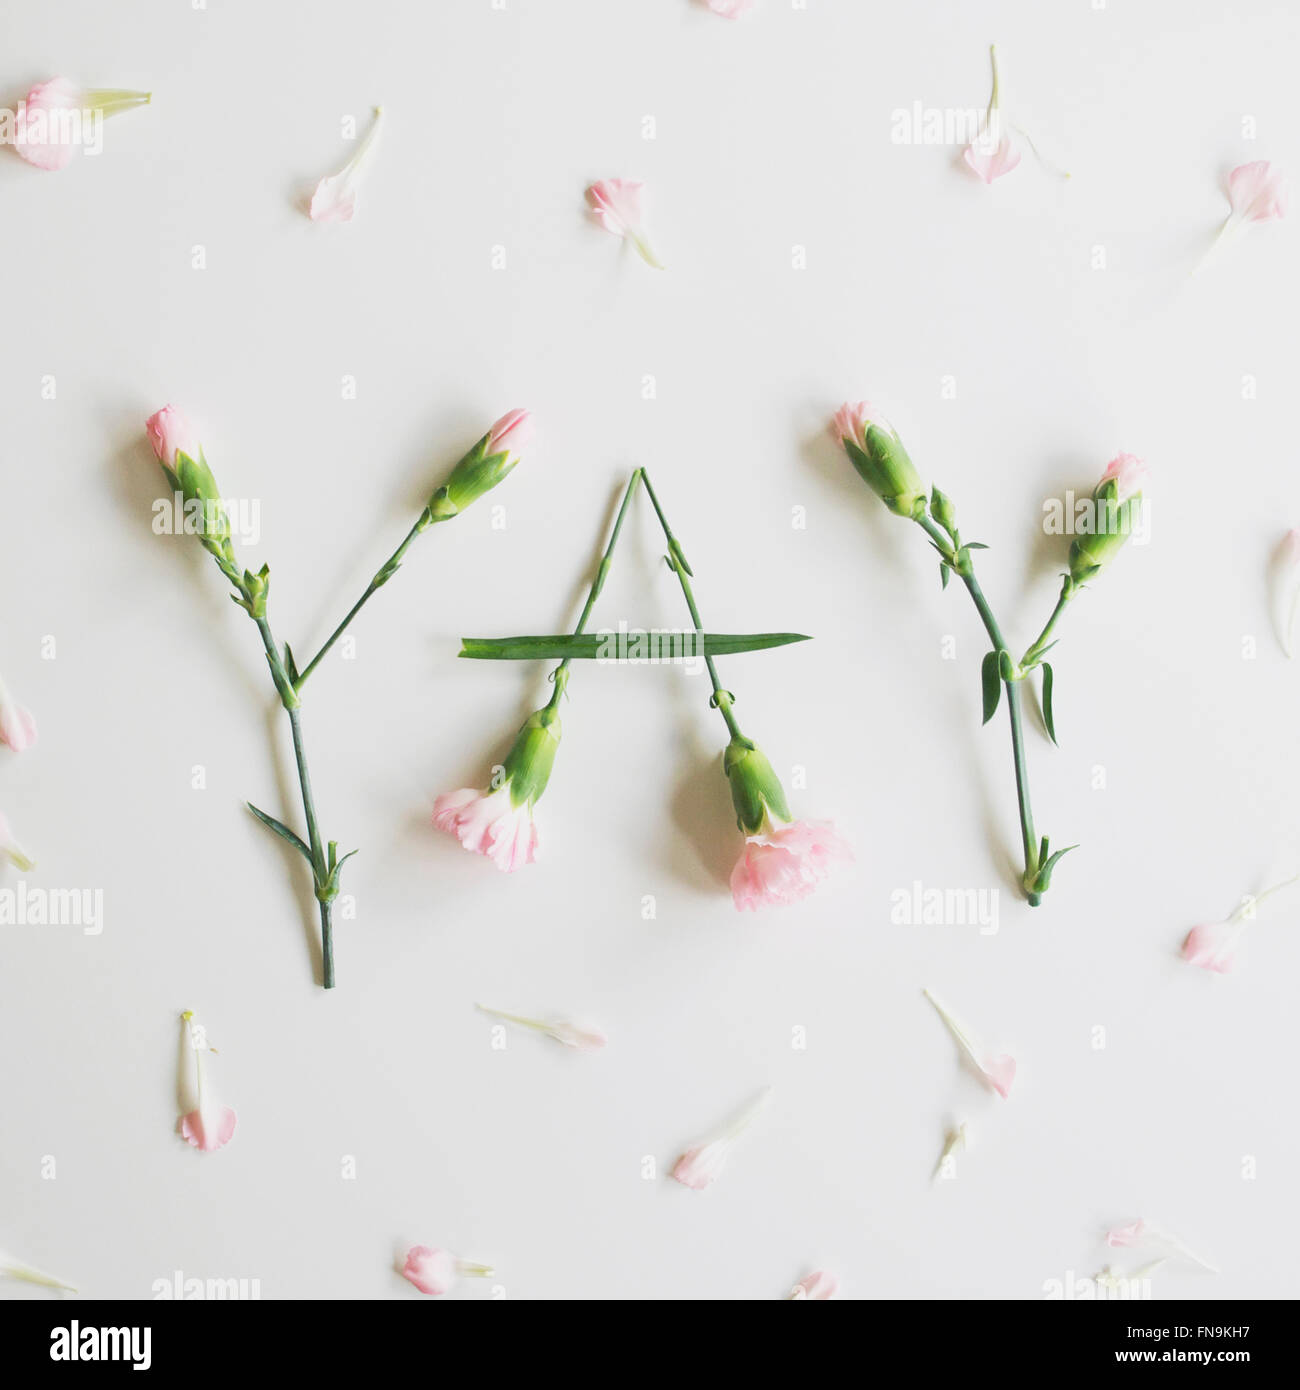 YAY spelled out with carnations Stock Photo